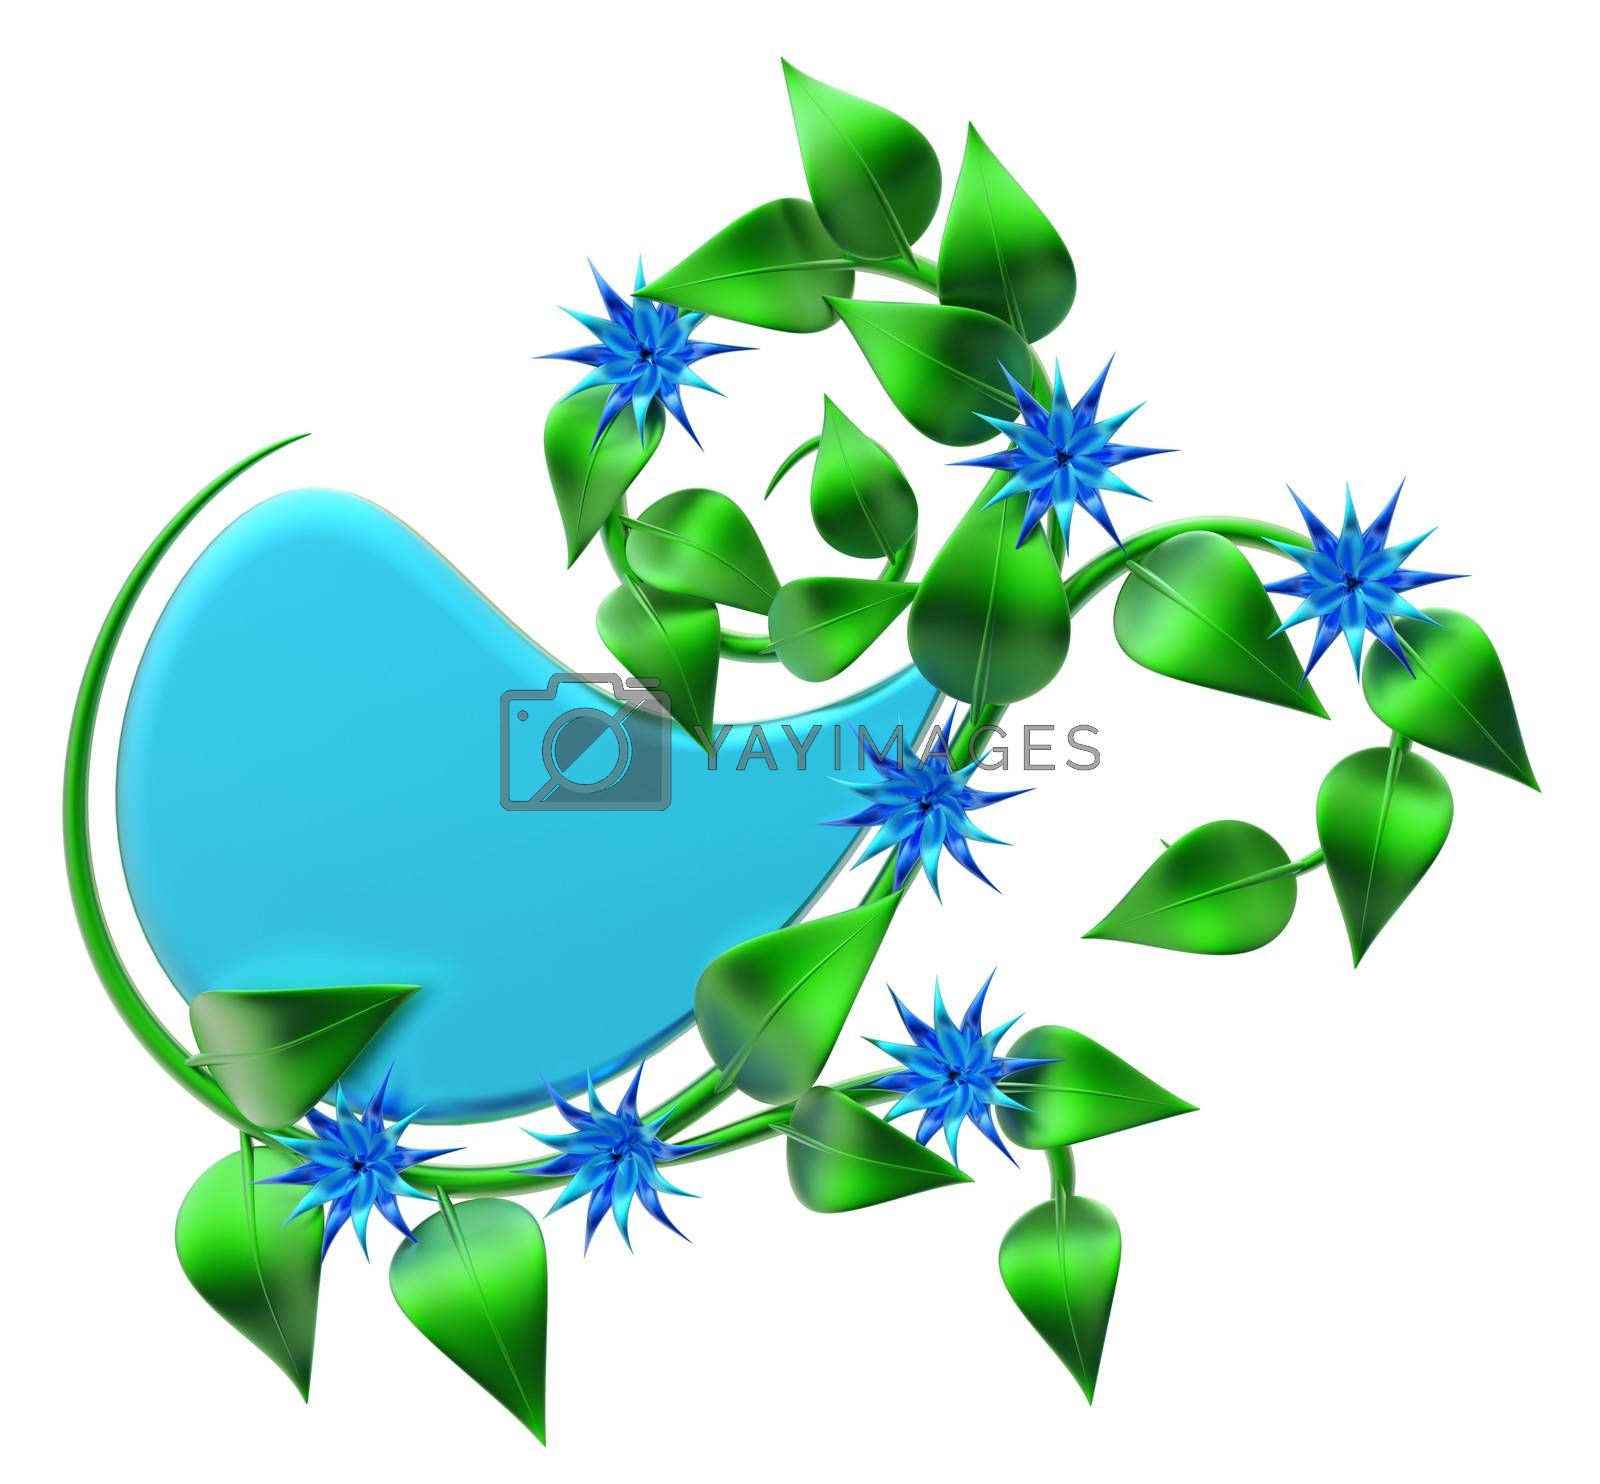 abstract green branch with leafs and flowers as decoration for frames